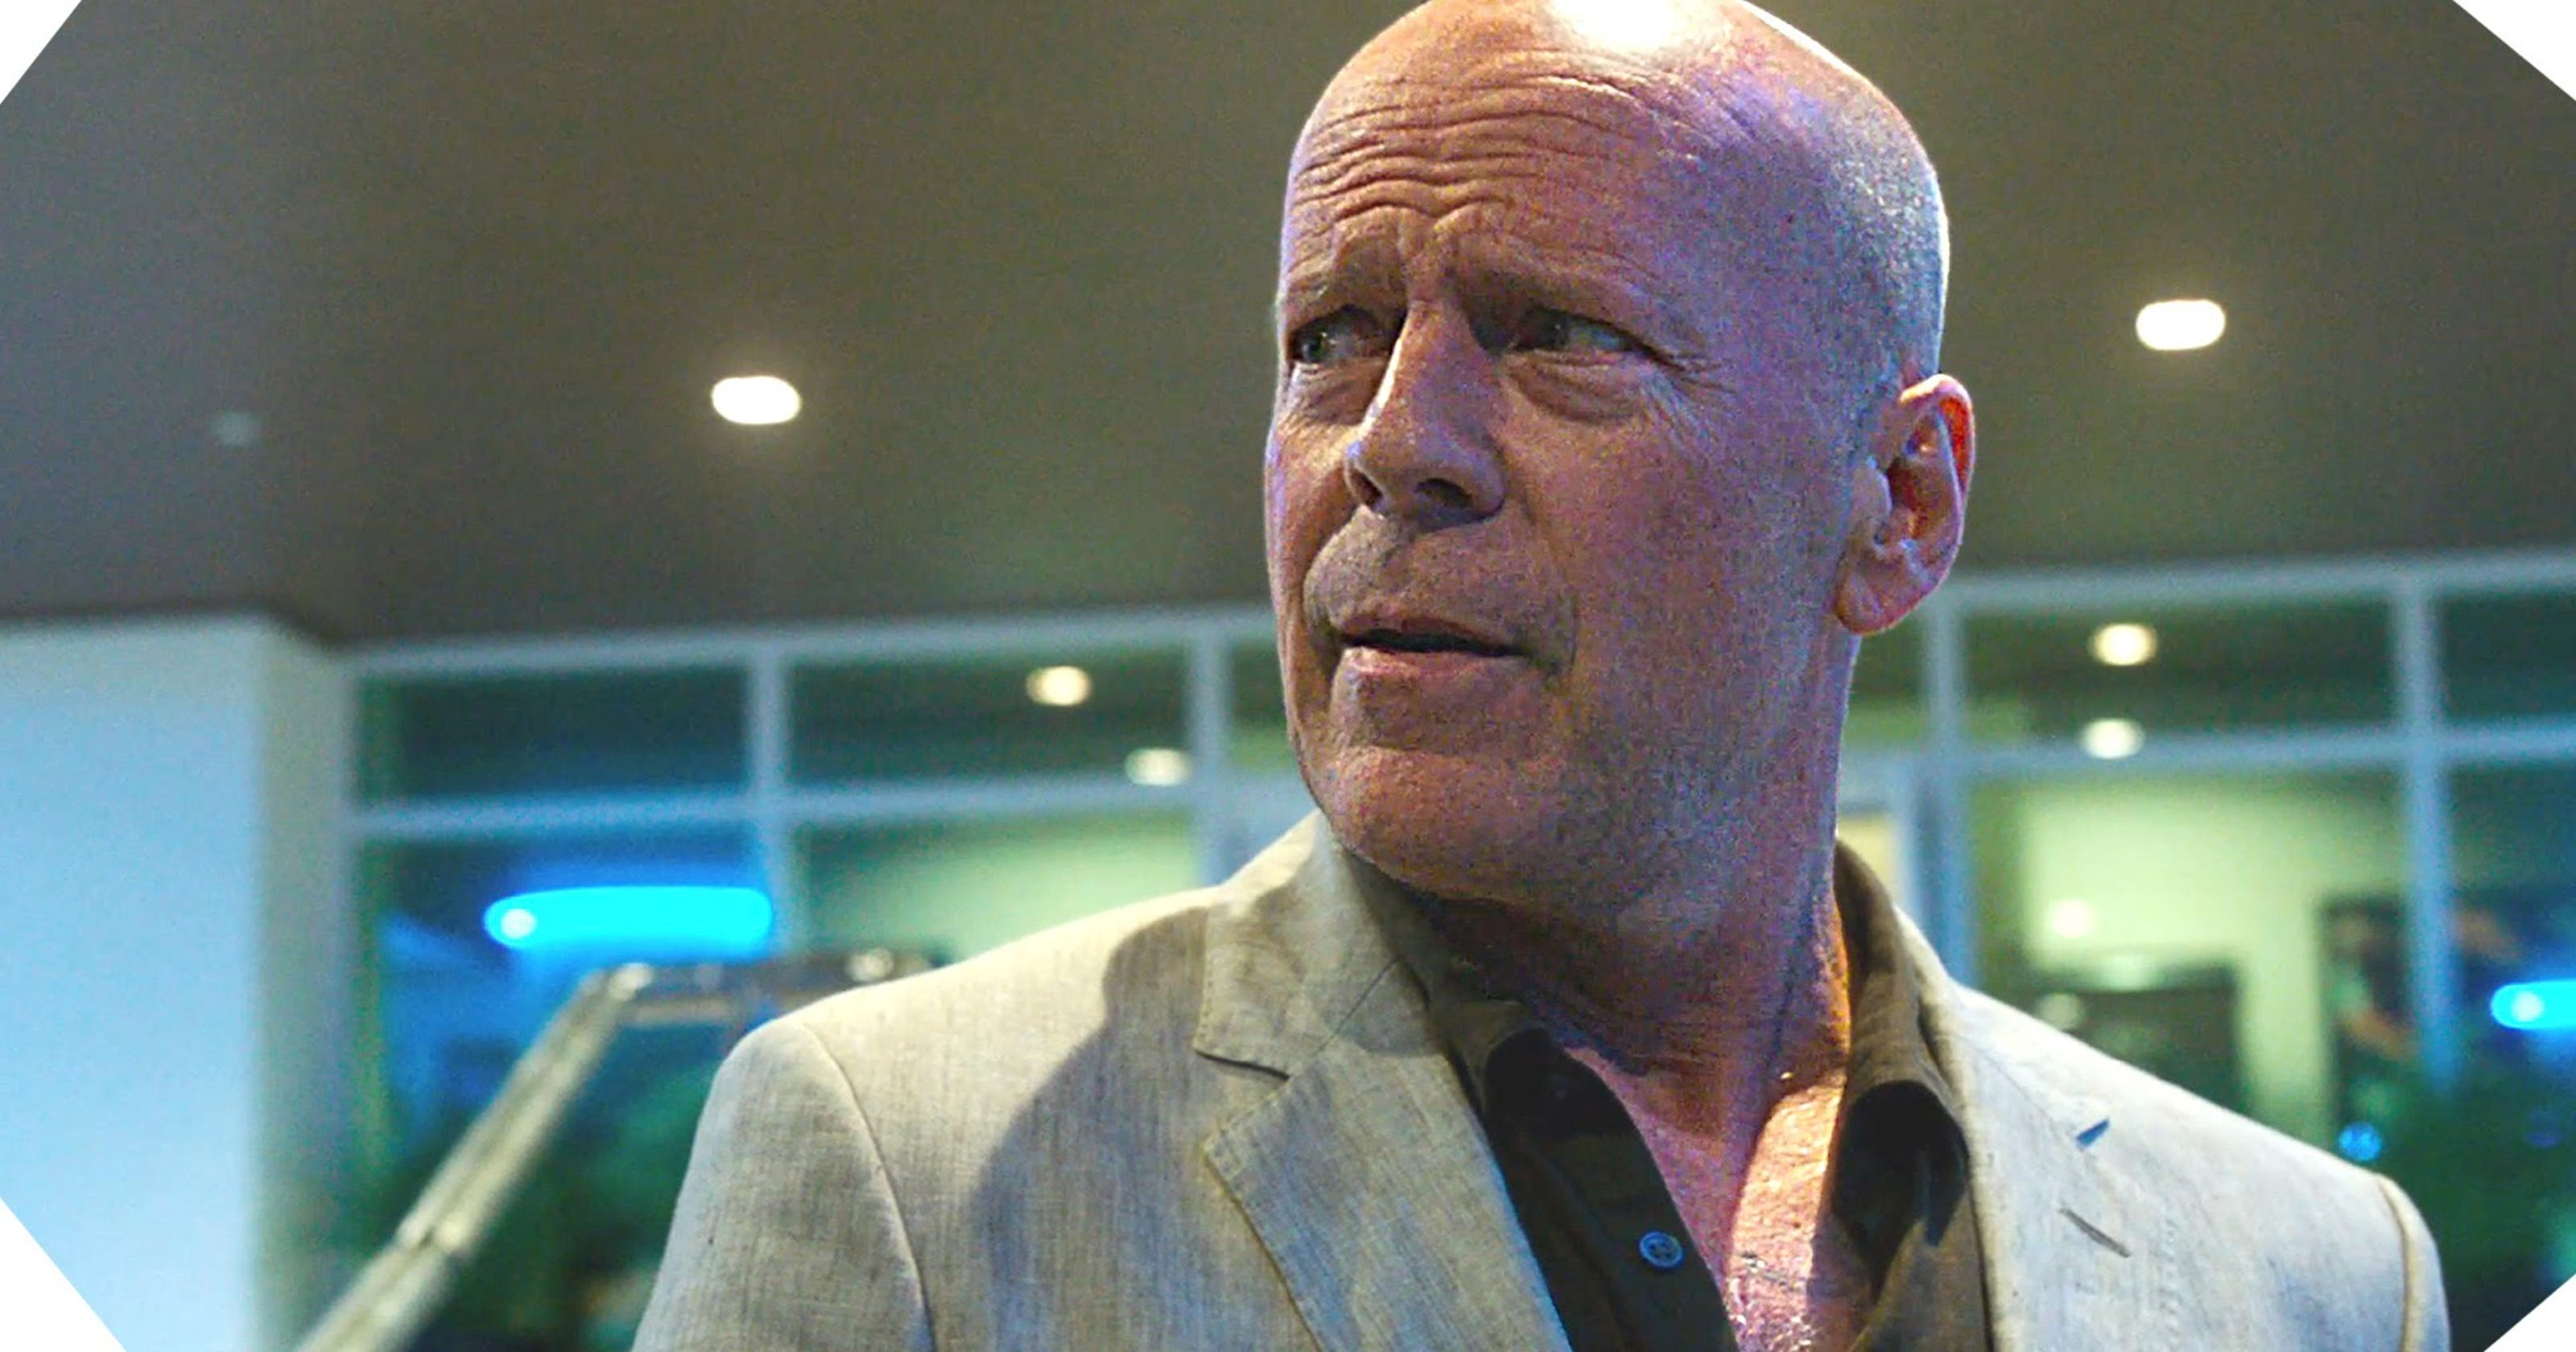 Bruce Willis What Is His Latest Action Movie